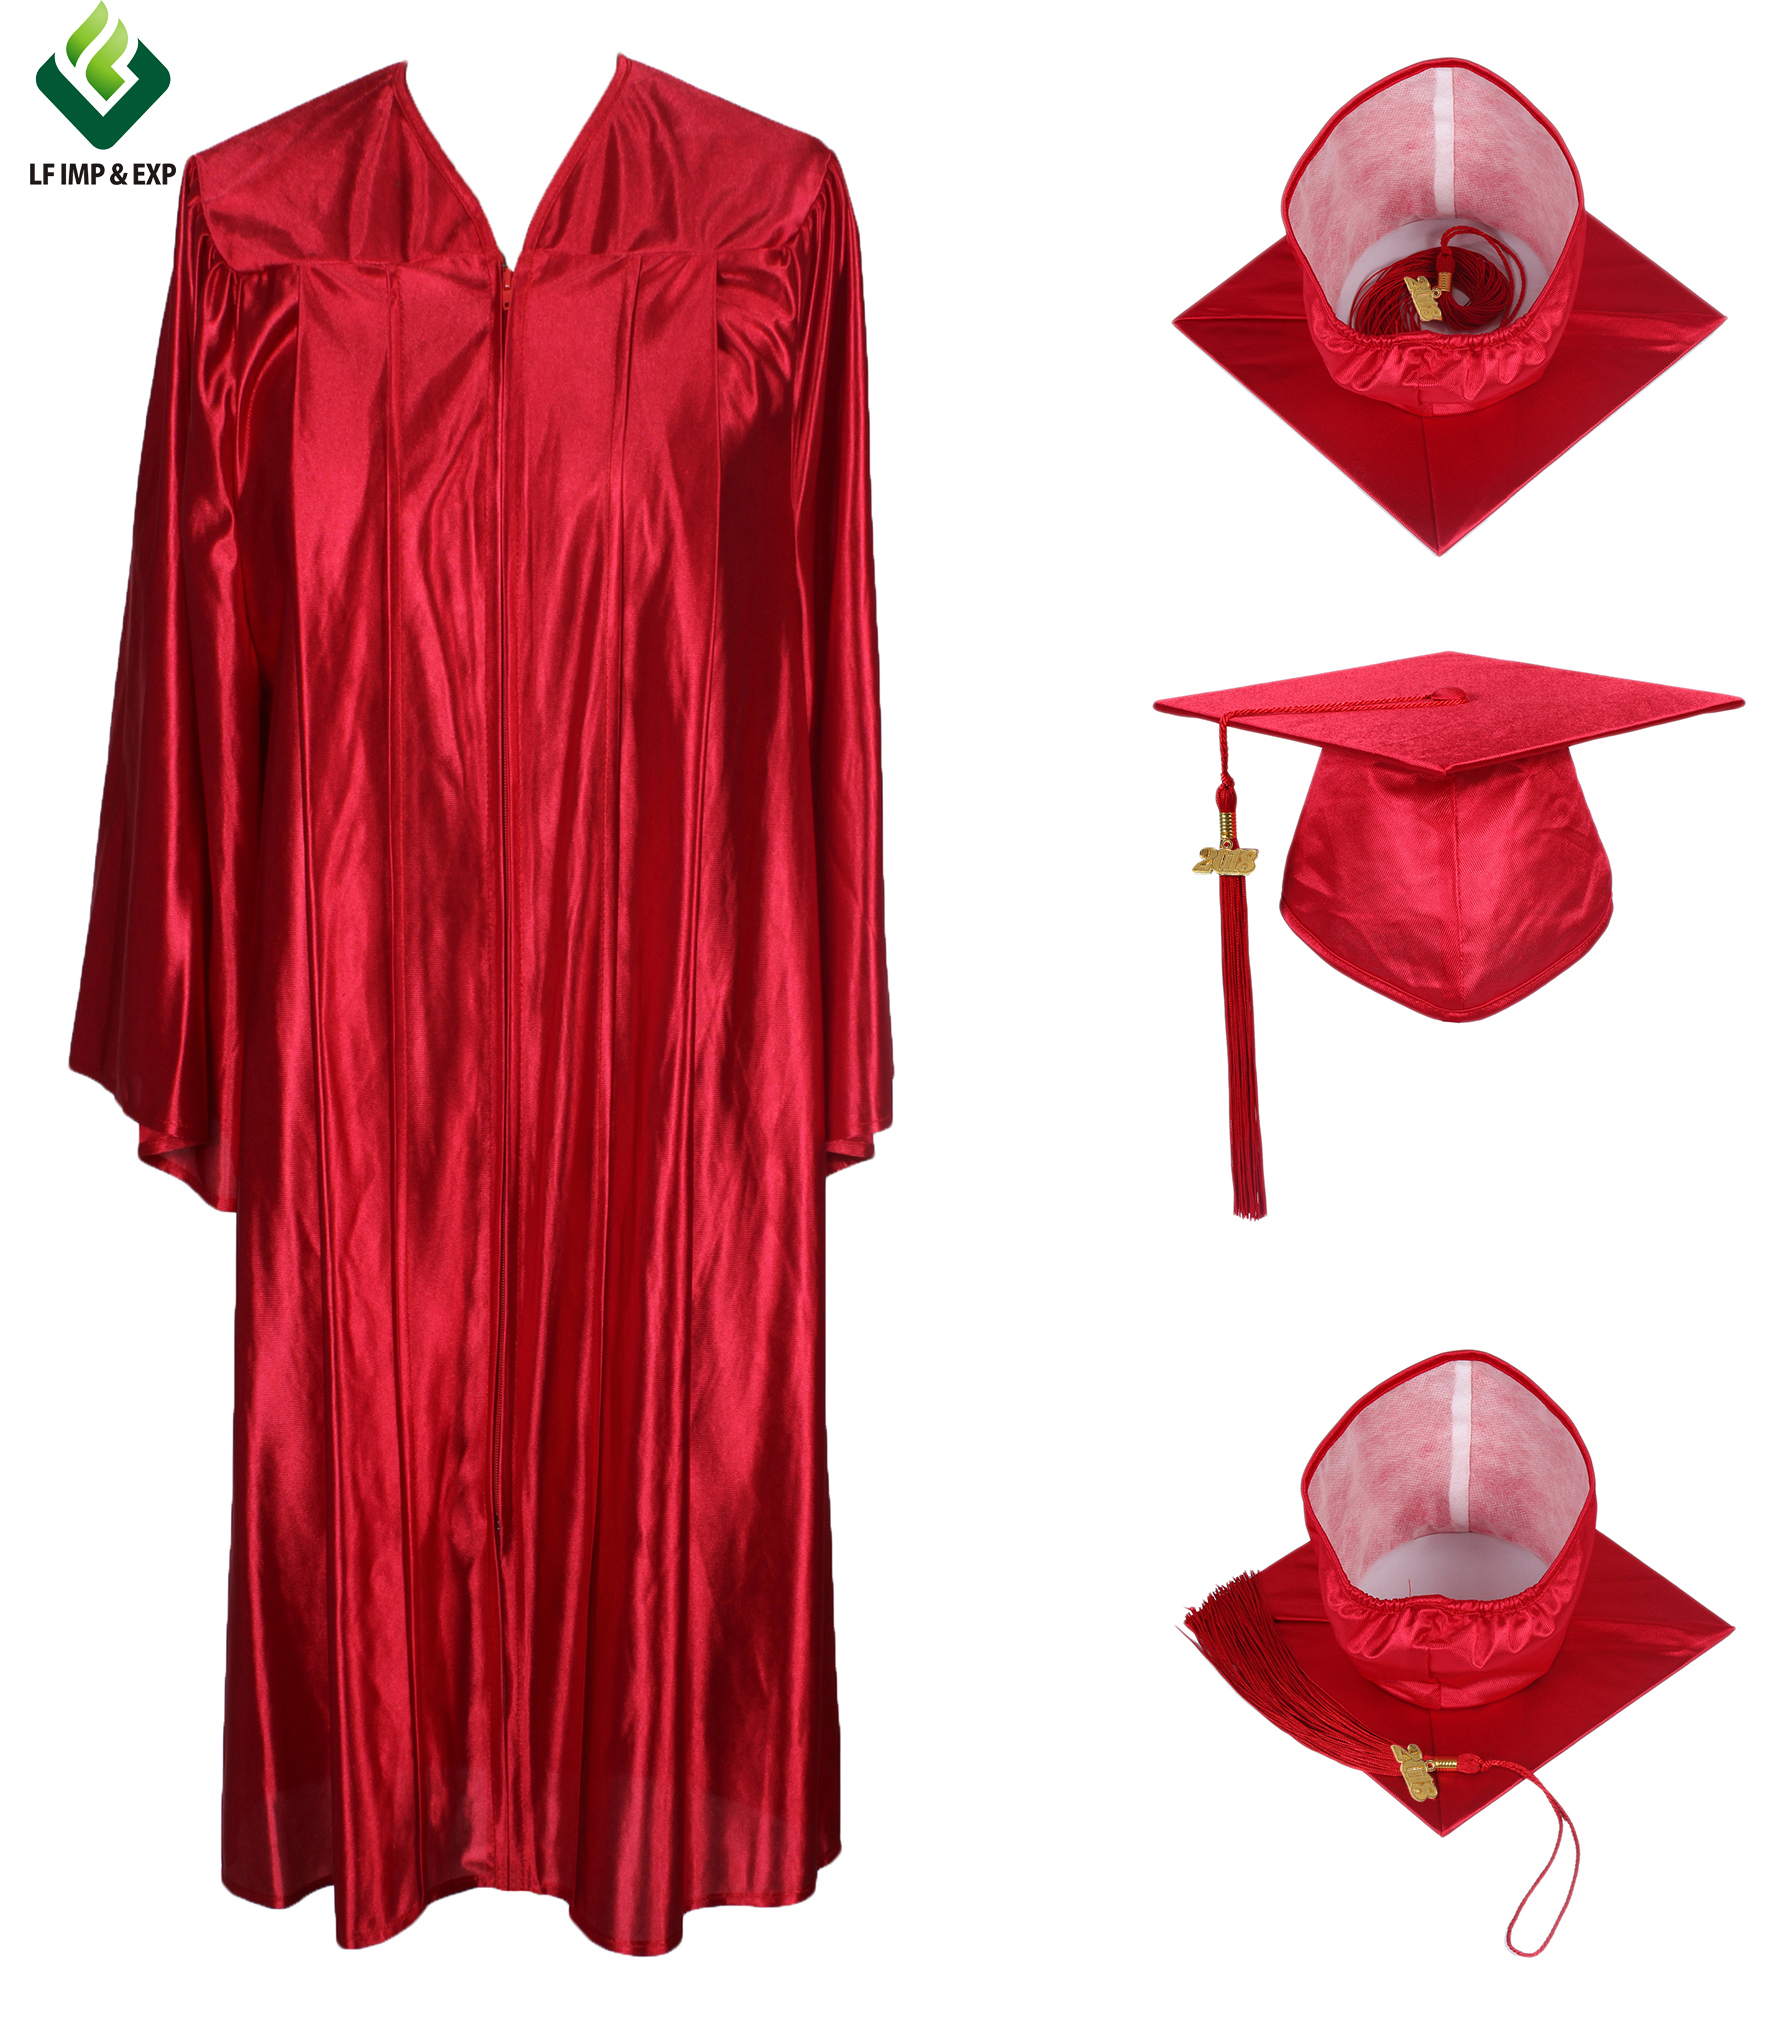 Academic Robe Graduation Gown and Cap with Tassel for Adults- Shiny Red, All colors available